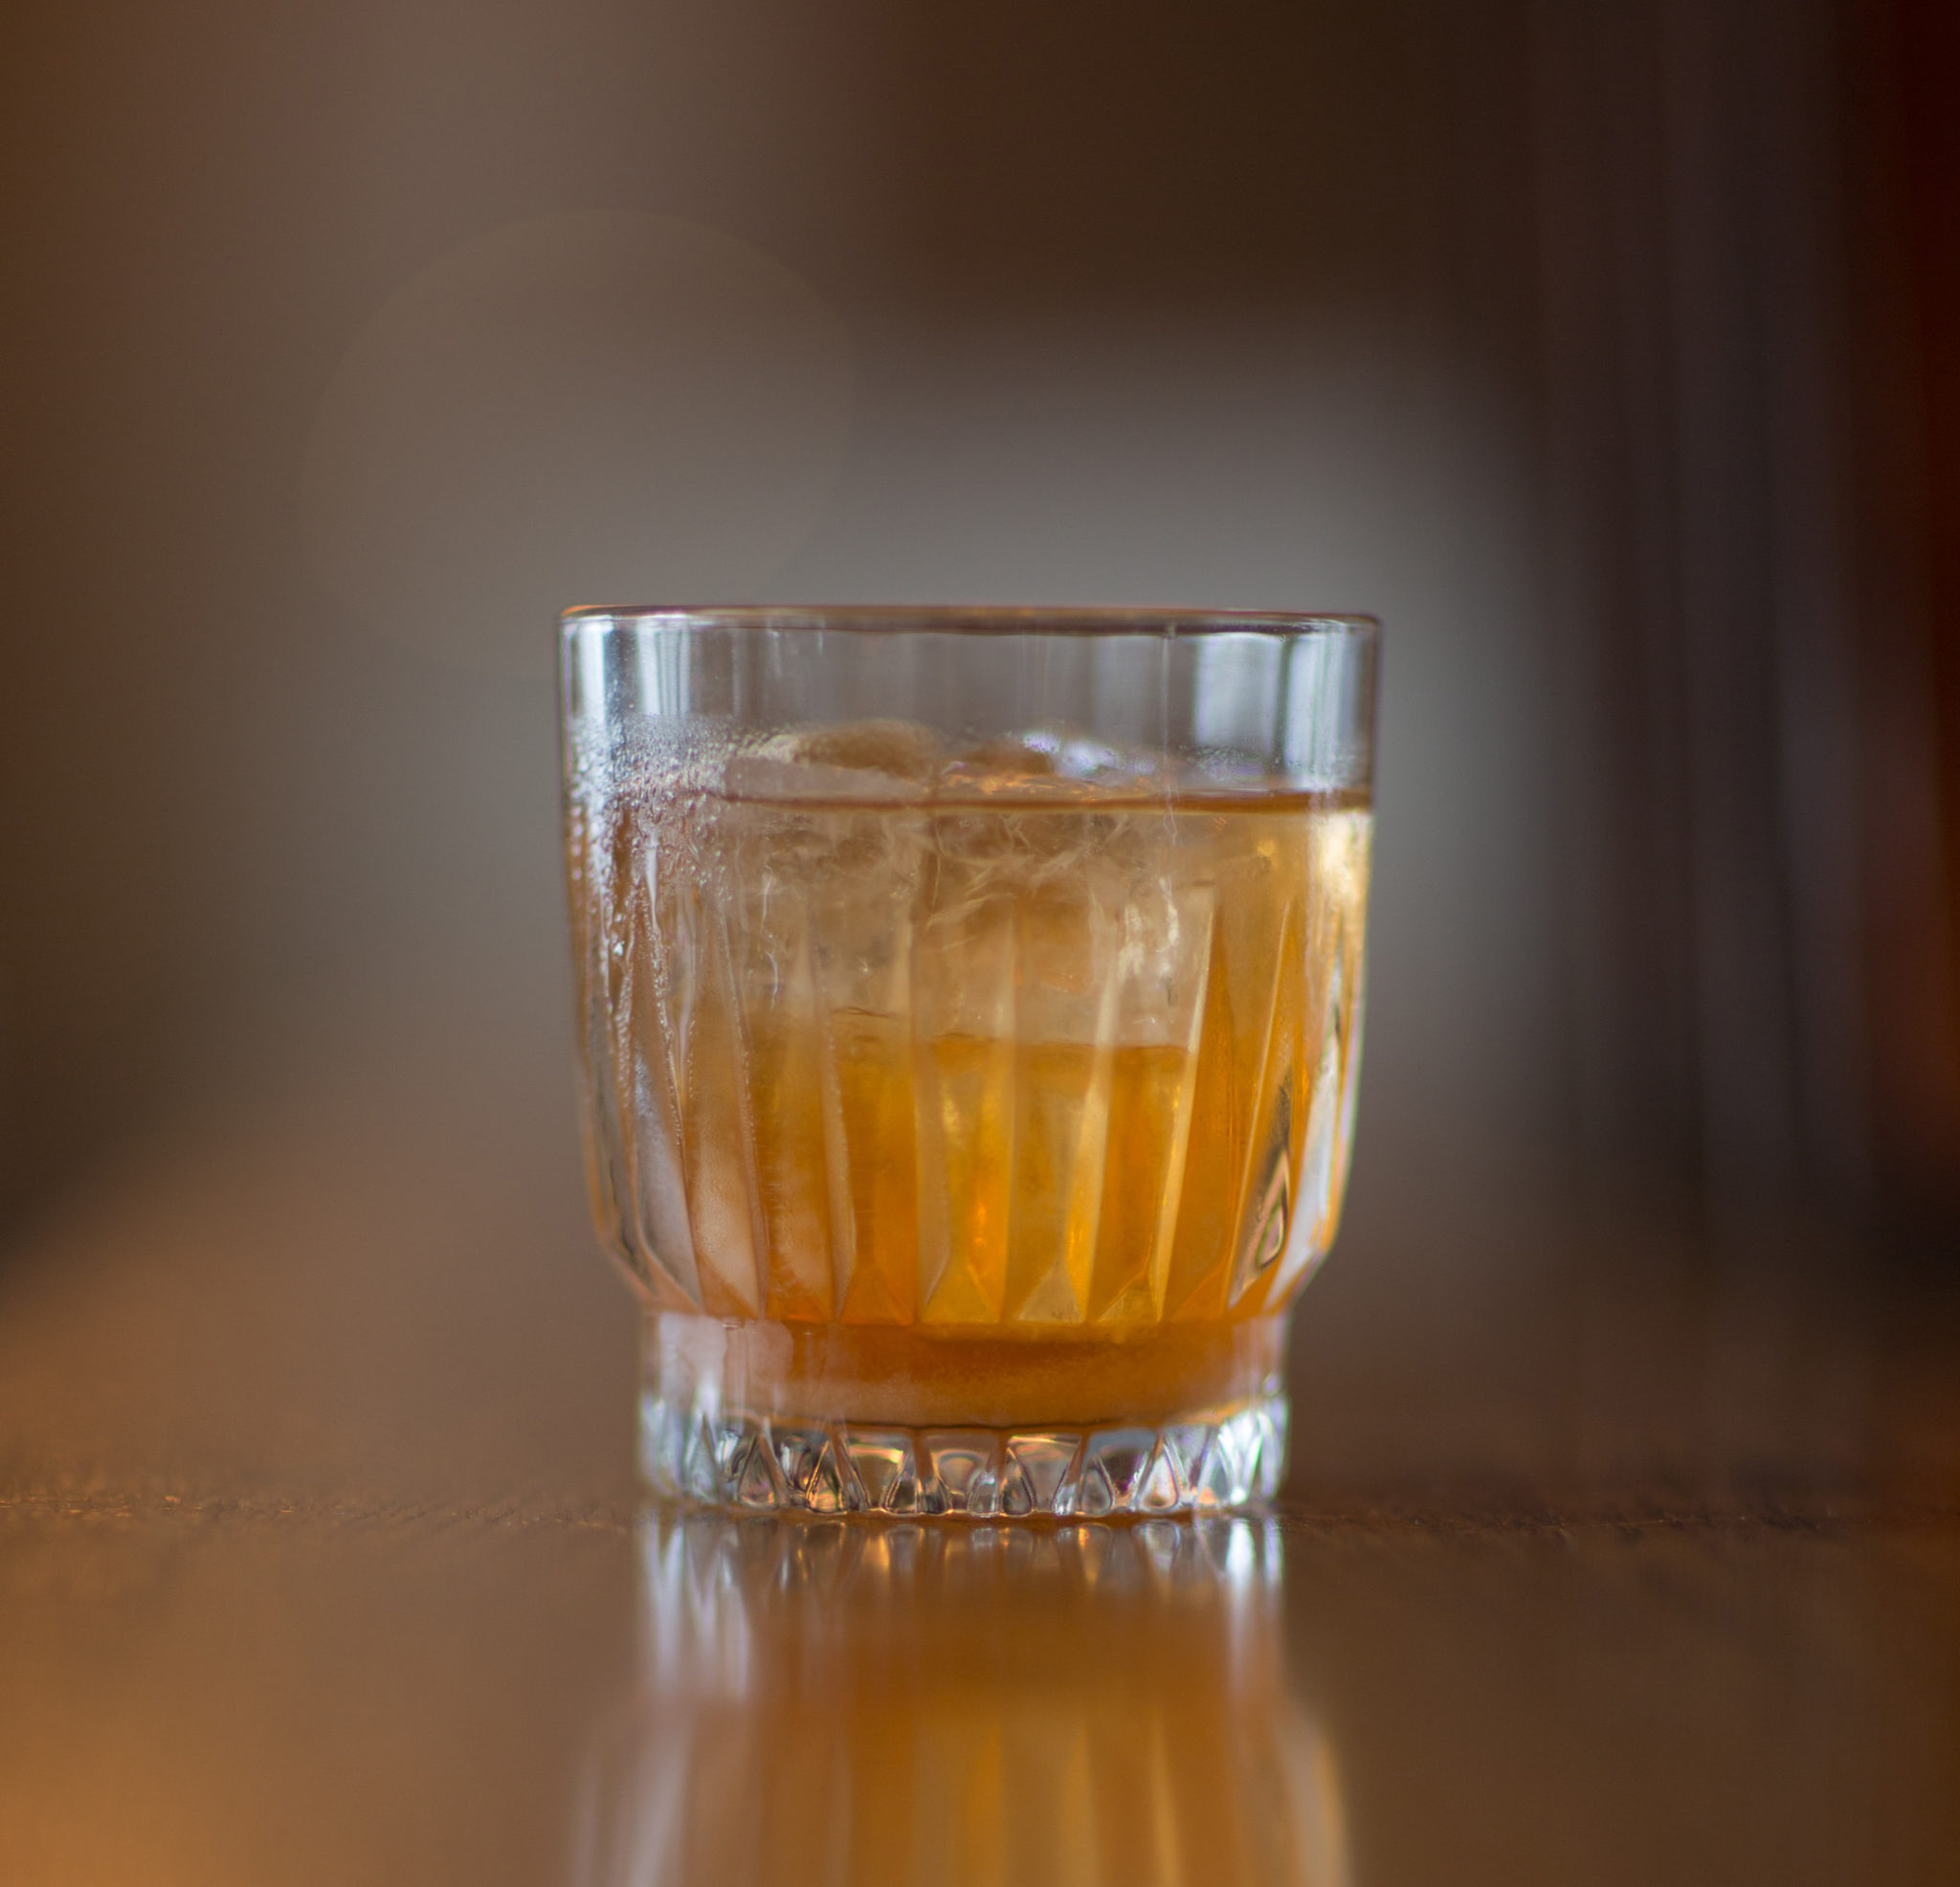 Peanut Butter Old Fashioned by Colin Edie found at The Pouring Tales 1